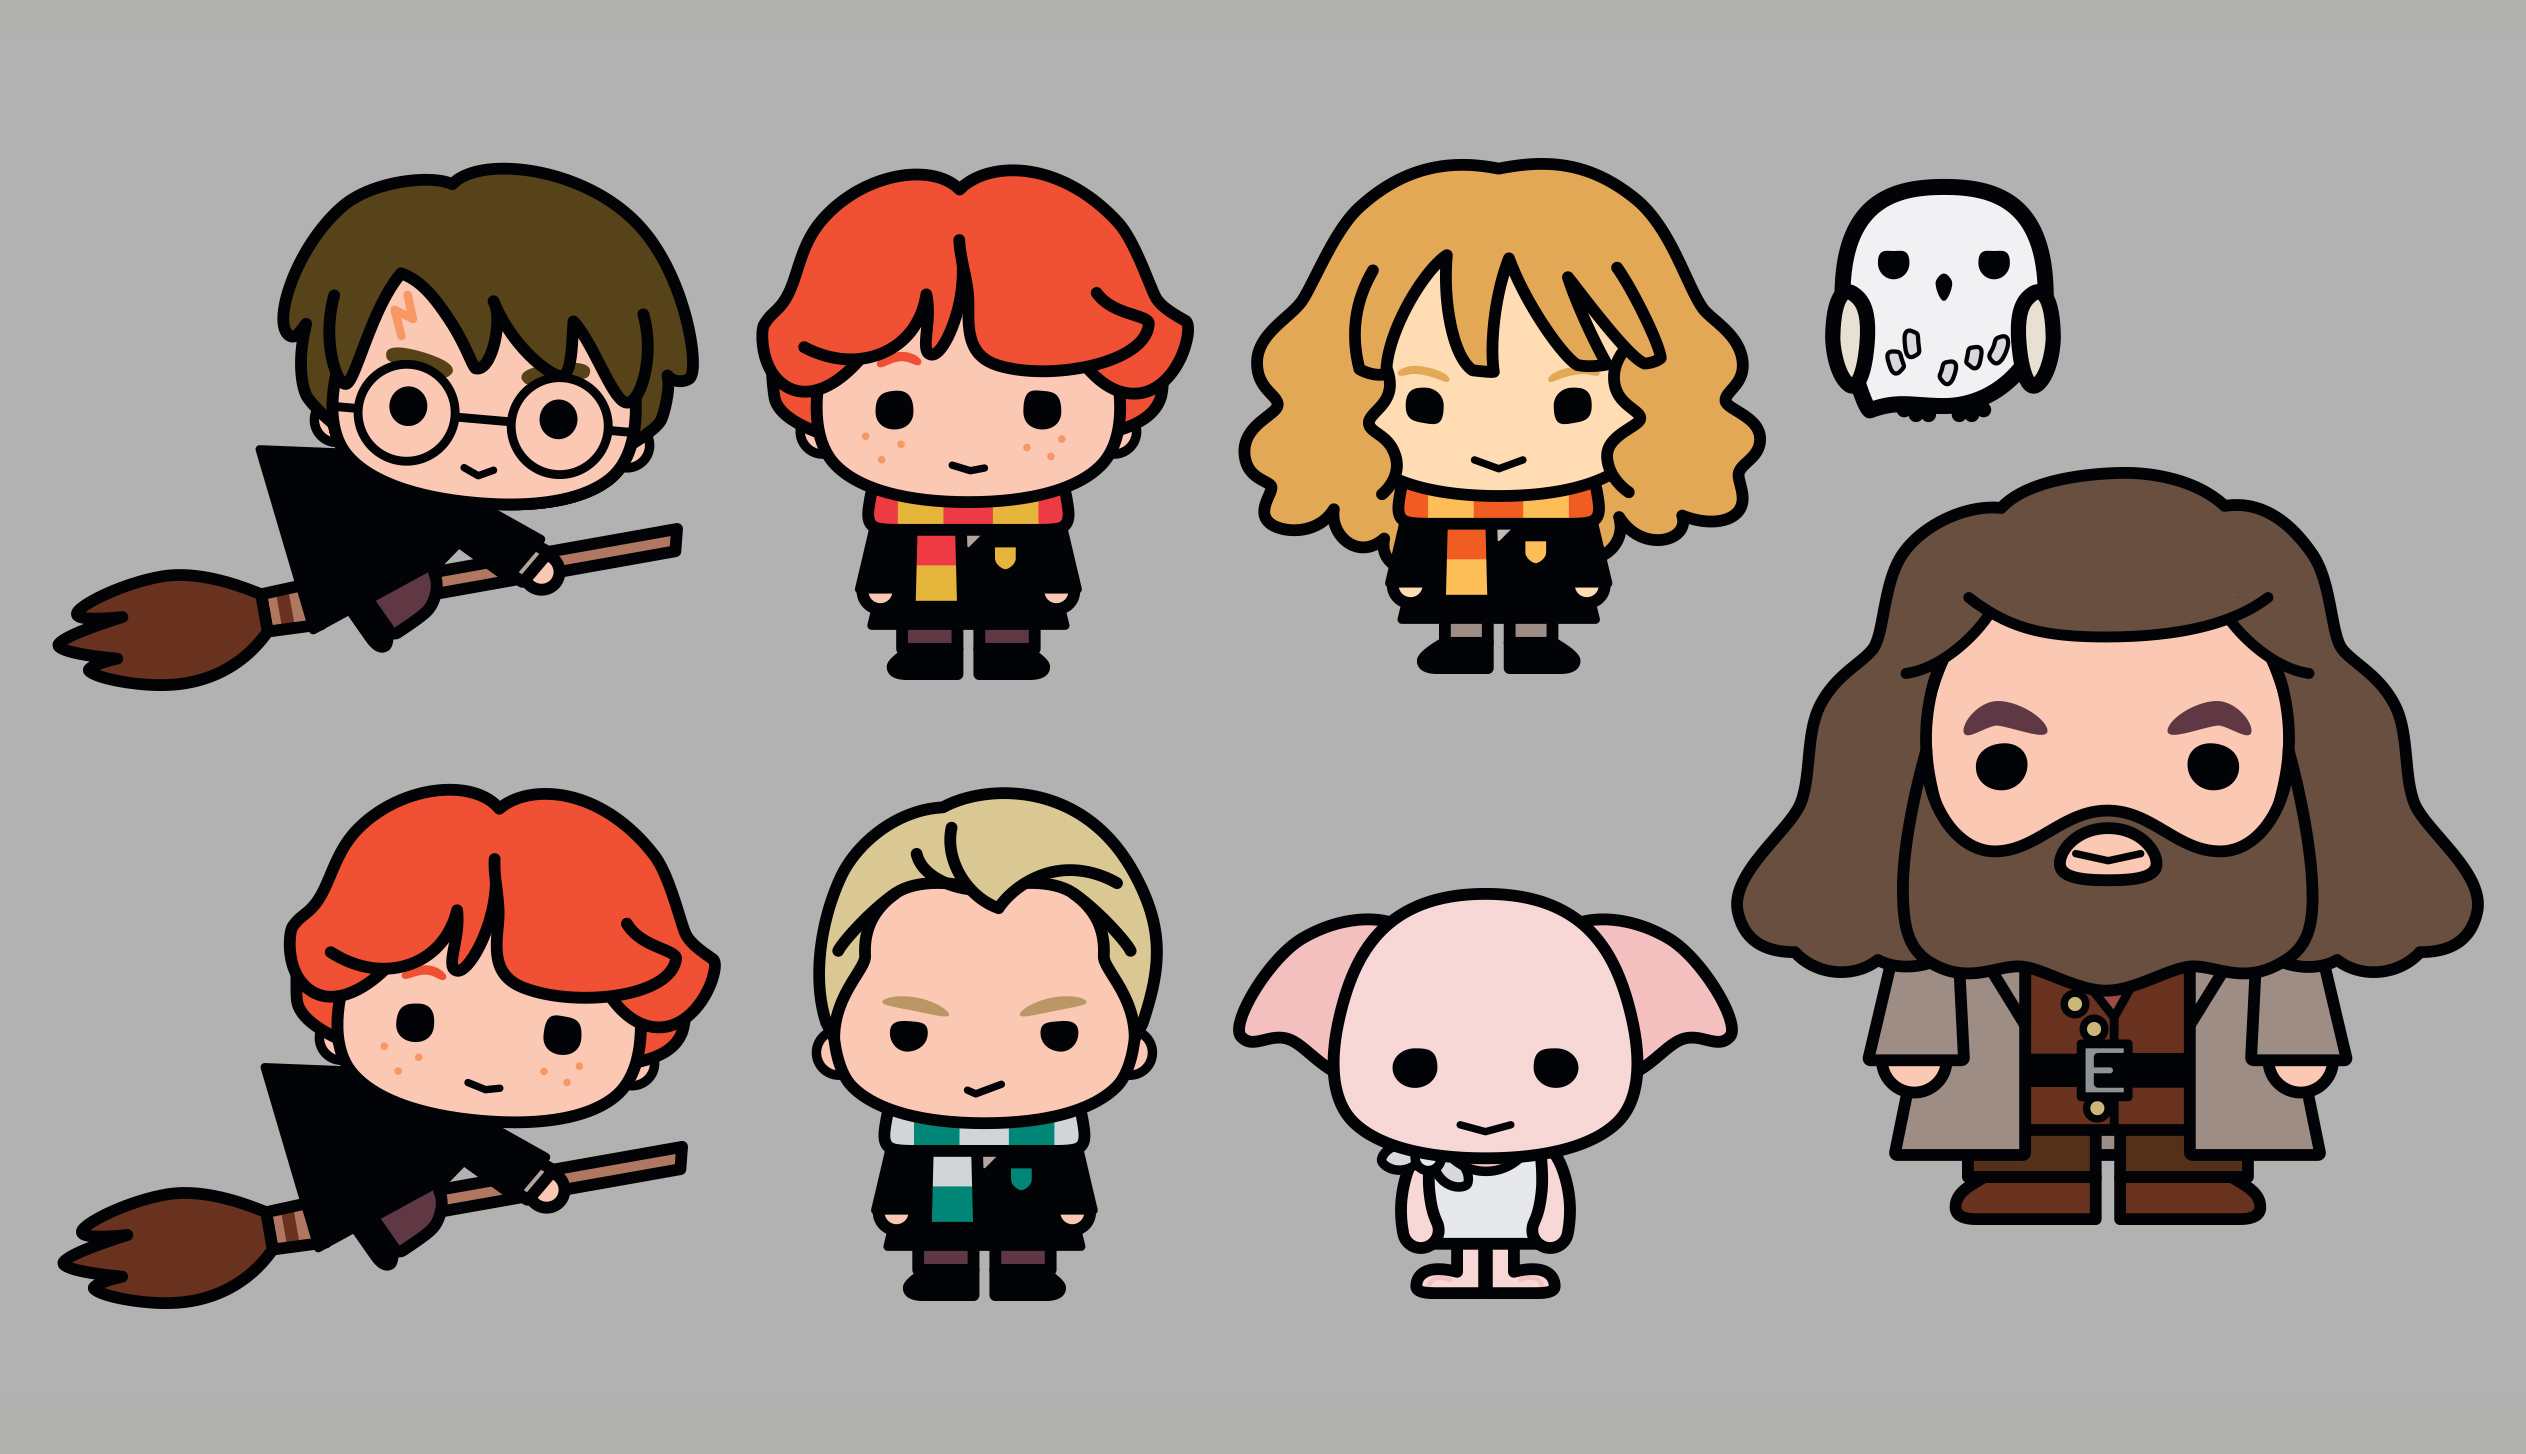 Harry potter characters.